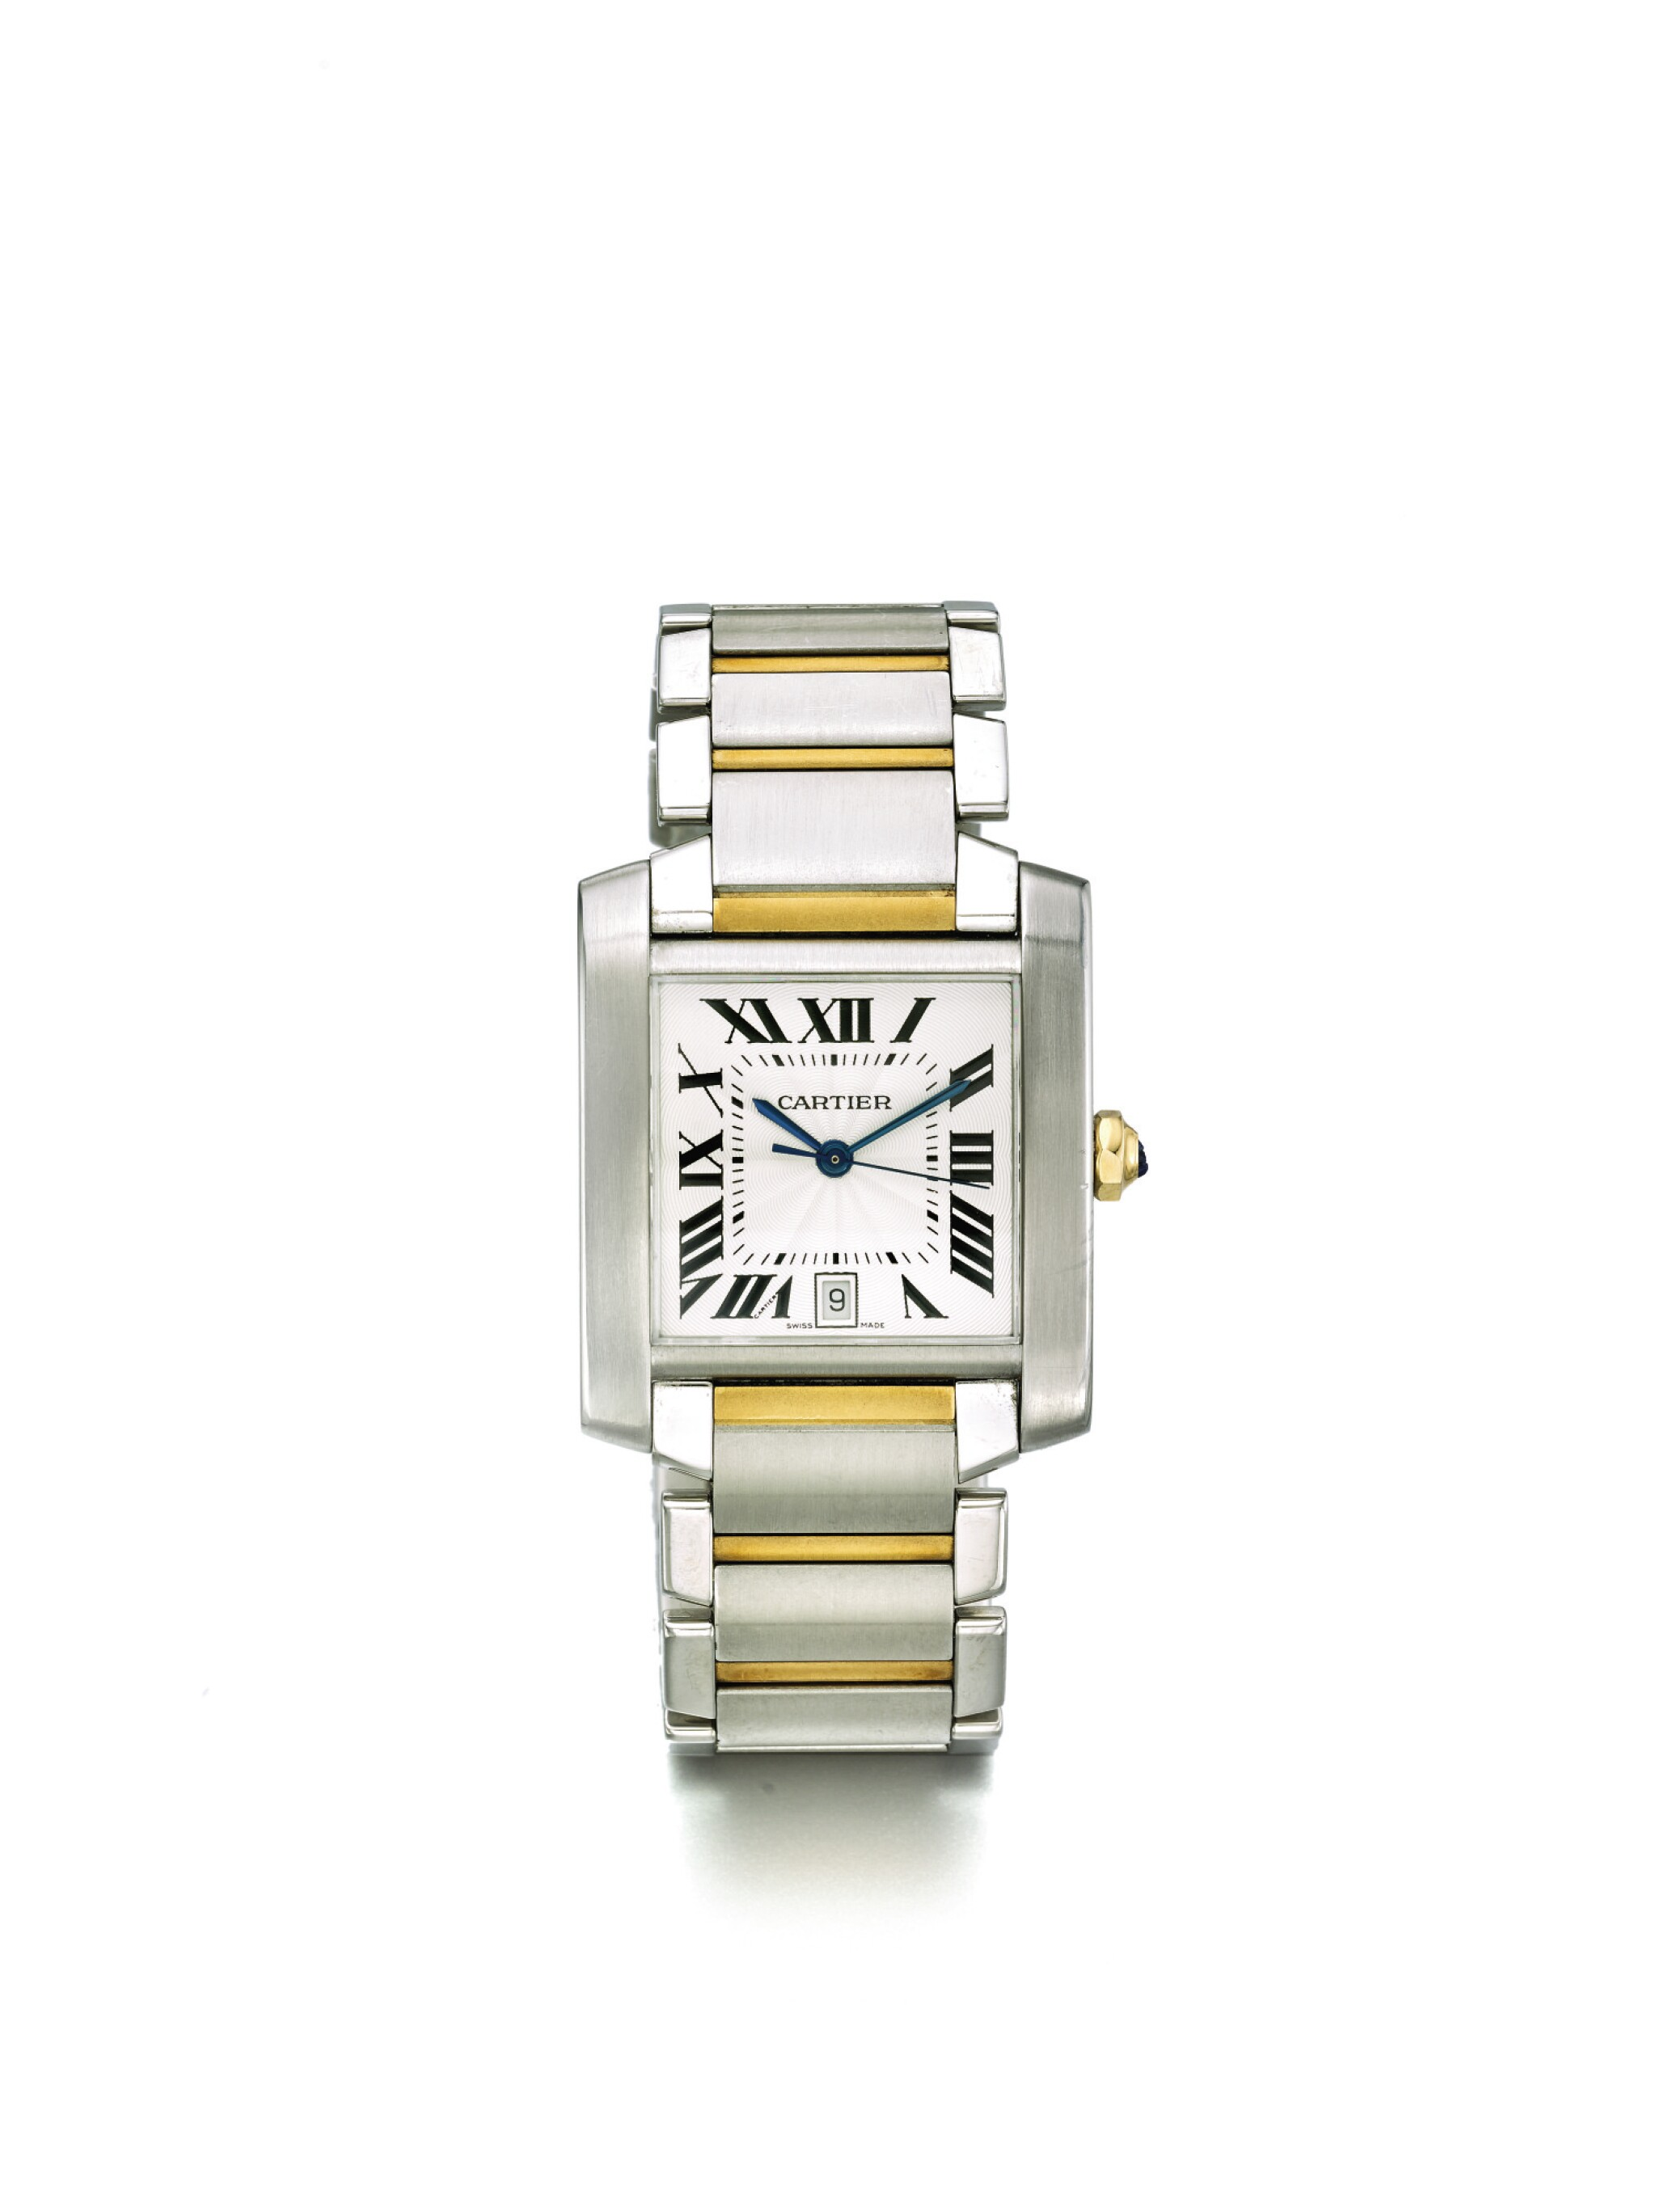 CARTIER   TANK FRANÇAISE REF 2302 A STAINLESS STEEL AND YELLOW GOLD RECTANGULAR AUTOMATIC CENTER SECONDS WRISTWATCH WITH DATE AND BRACELET CIRCA 2005